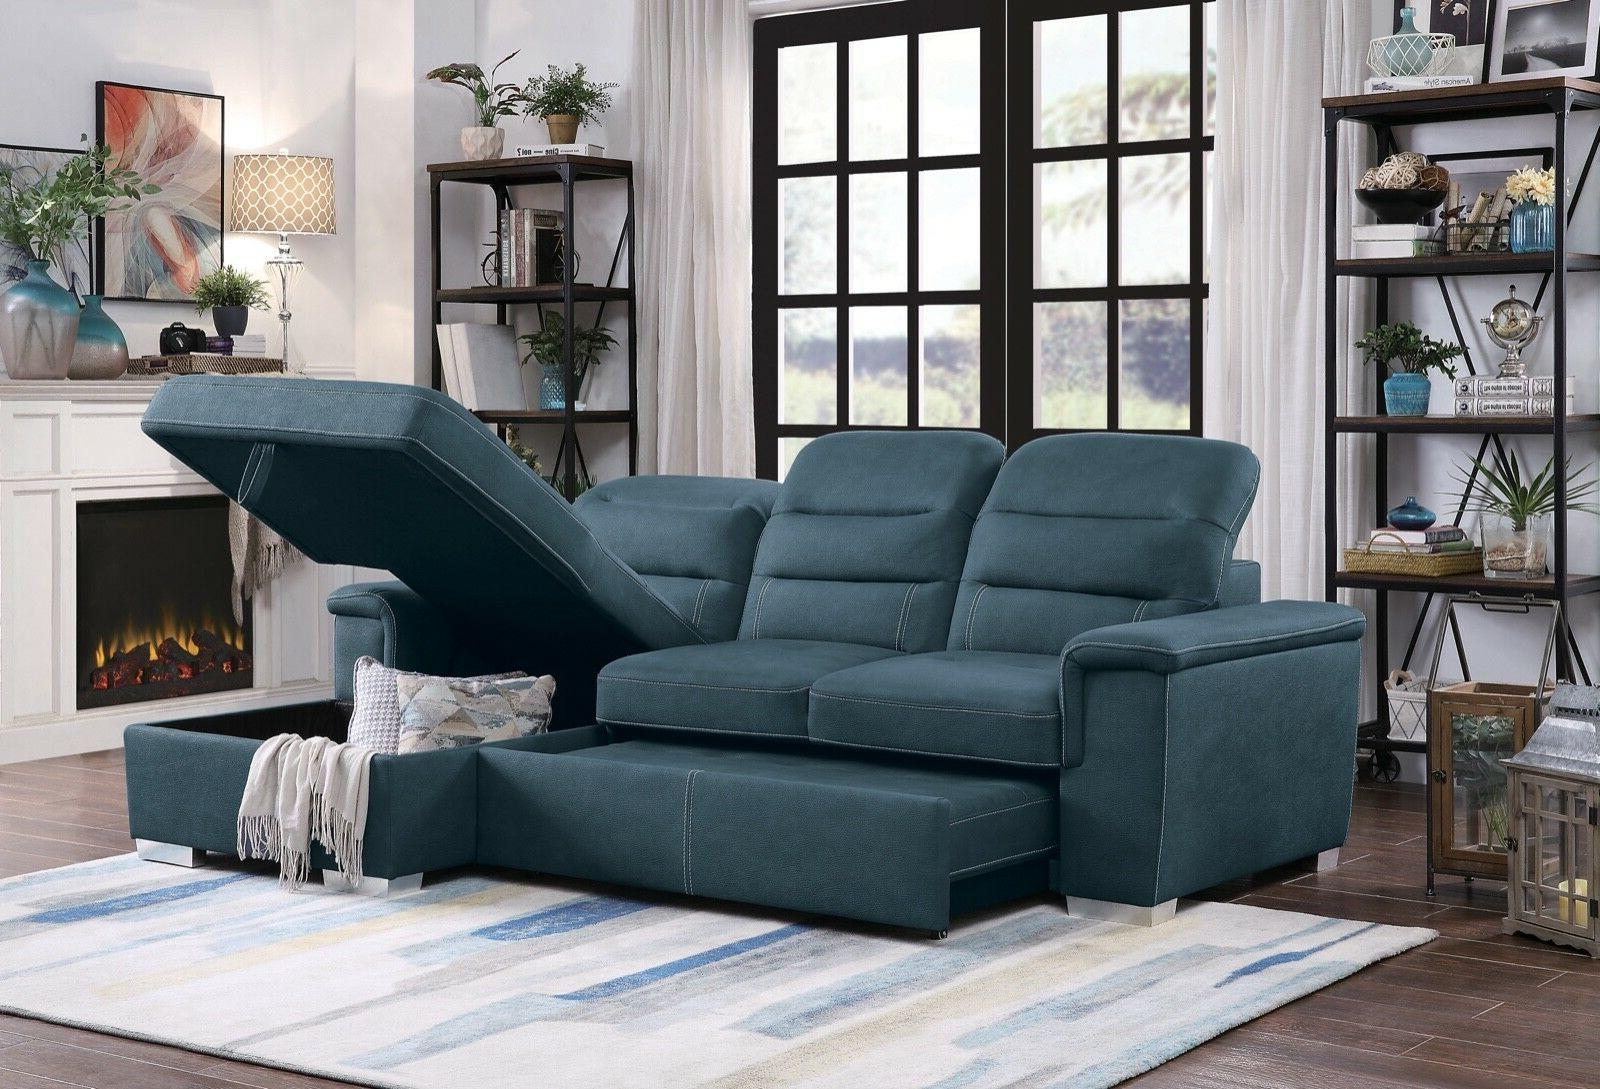 blue polyester queen sleeper storage sofa sectional